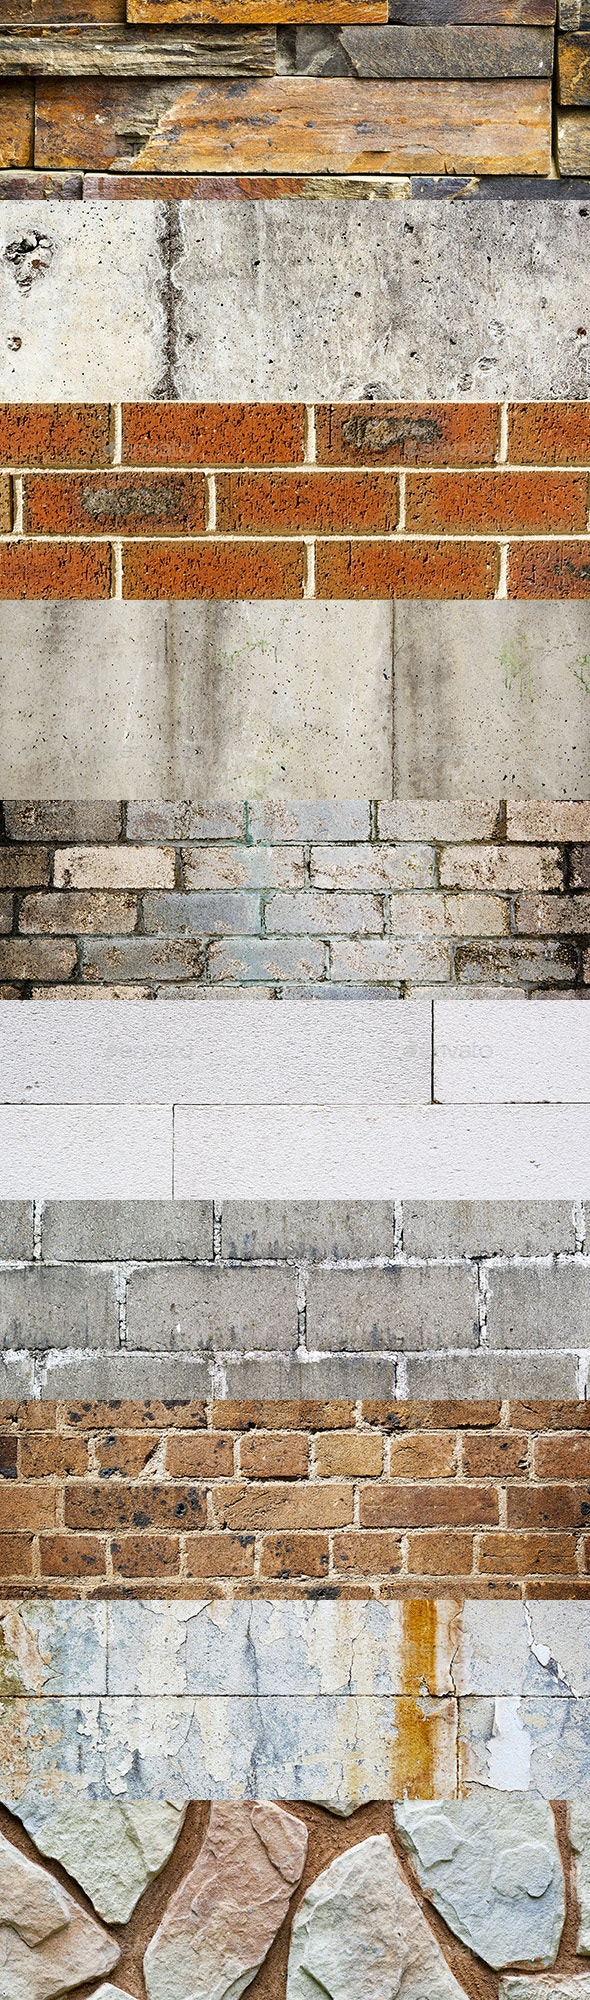 10 Brick And Stone Texture Backgrounds Pack - Stone Textures